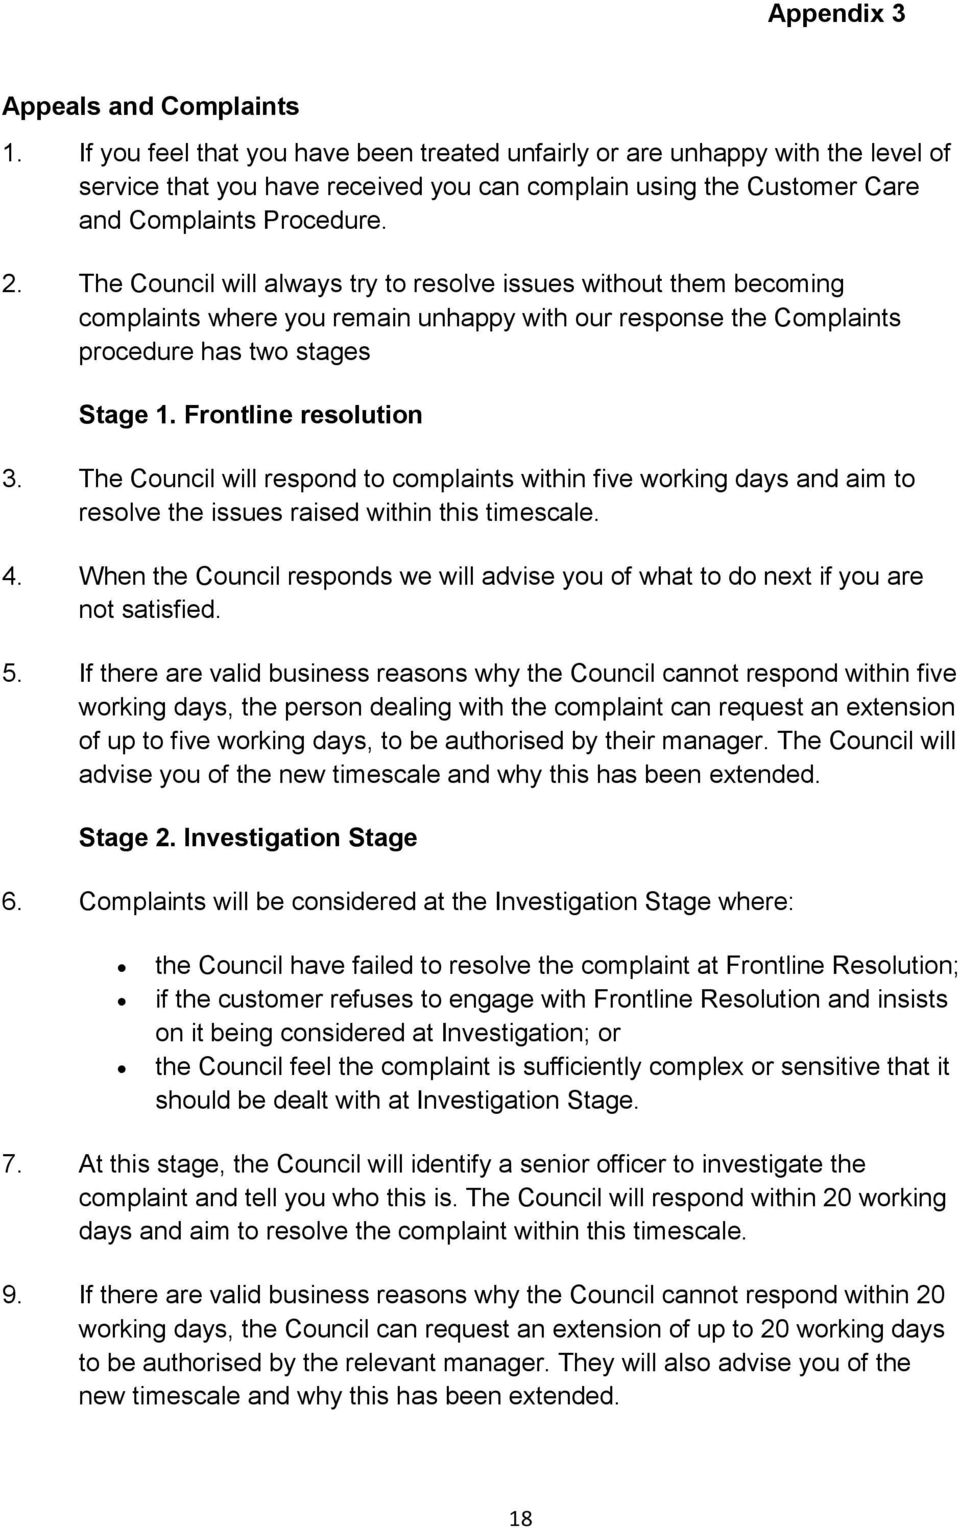 The Council will always try to resolve issues without them becoming complaints where you remain unhappy with our response the Complaints procedure has two stages Stage 1. Frontline resolution 3.